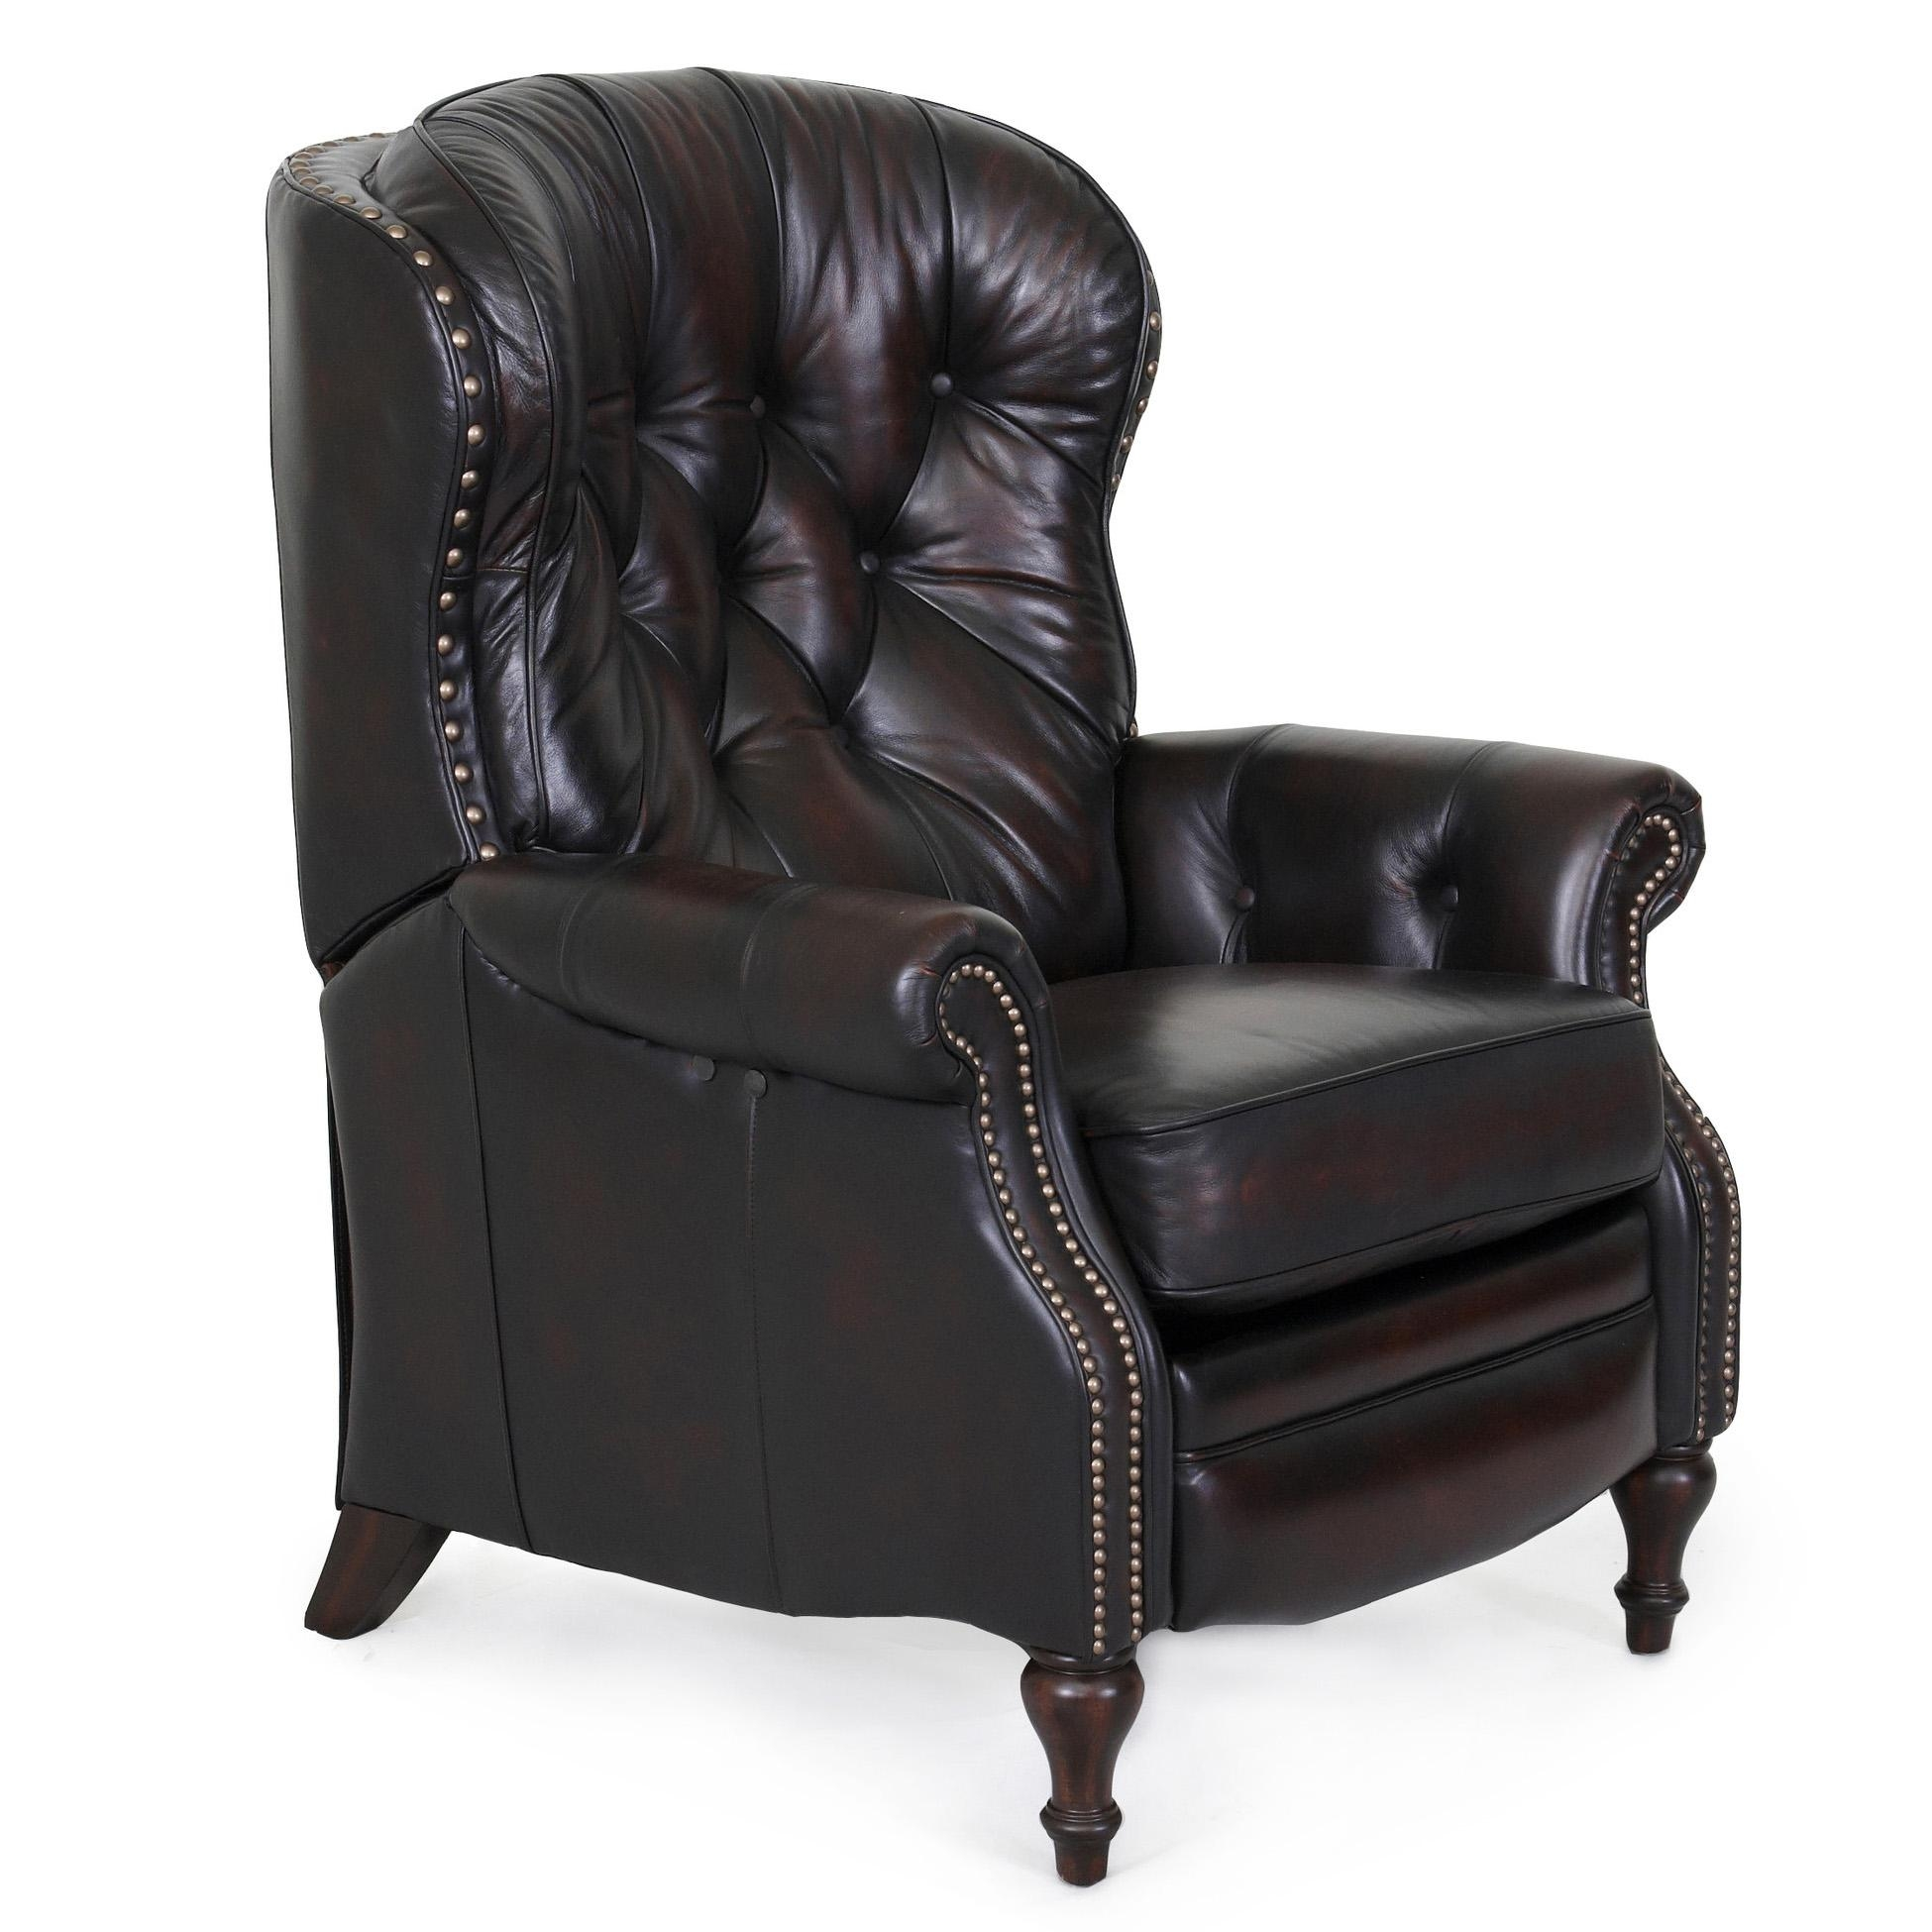 Barcalounger Kendall Ii Recliner Chair – Leather Recliner Chair With Regard To Barcalounger Sofas (Image 8 of 20)